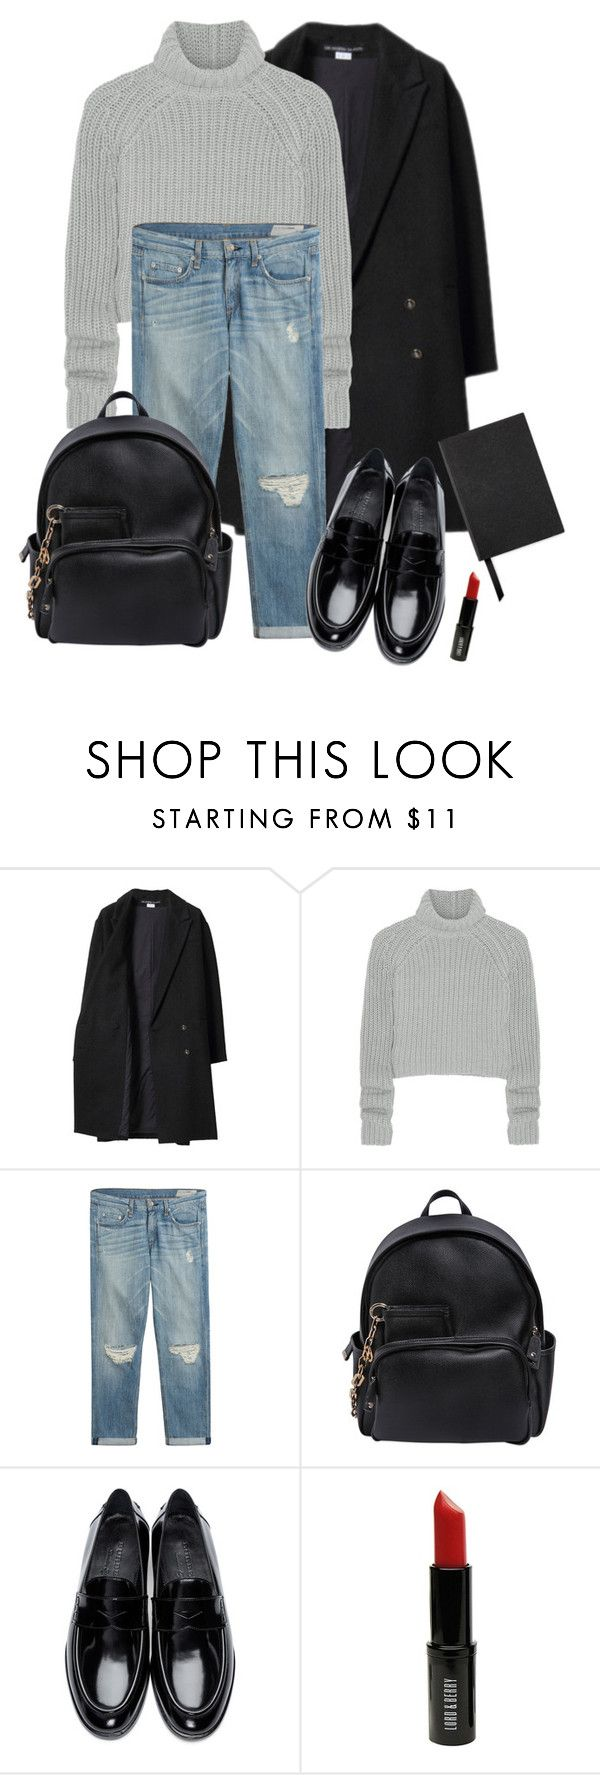 """Noora Skam"" by vickiprevi ❤ liked on Polyvore featuring Les Prairies de Paris, T By Alexander Wang, rag & bone, Dsquared2, Burberry, Lord & Berry and Smythson"